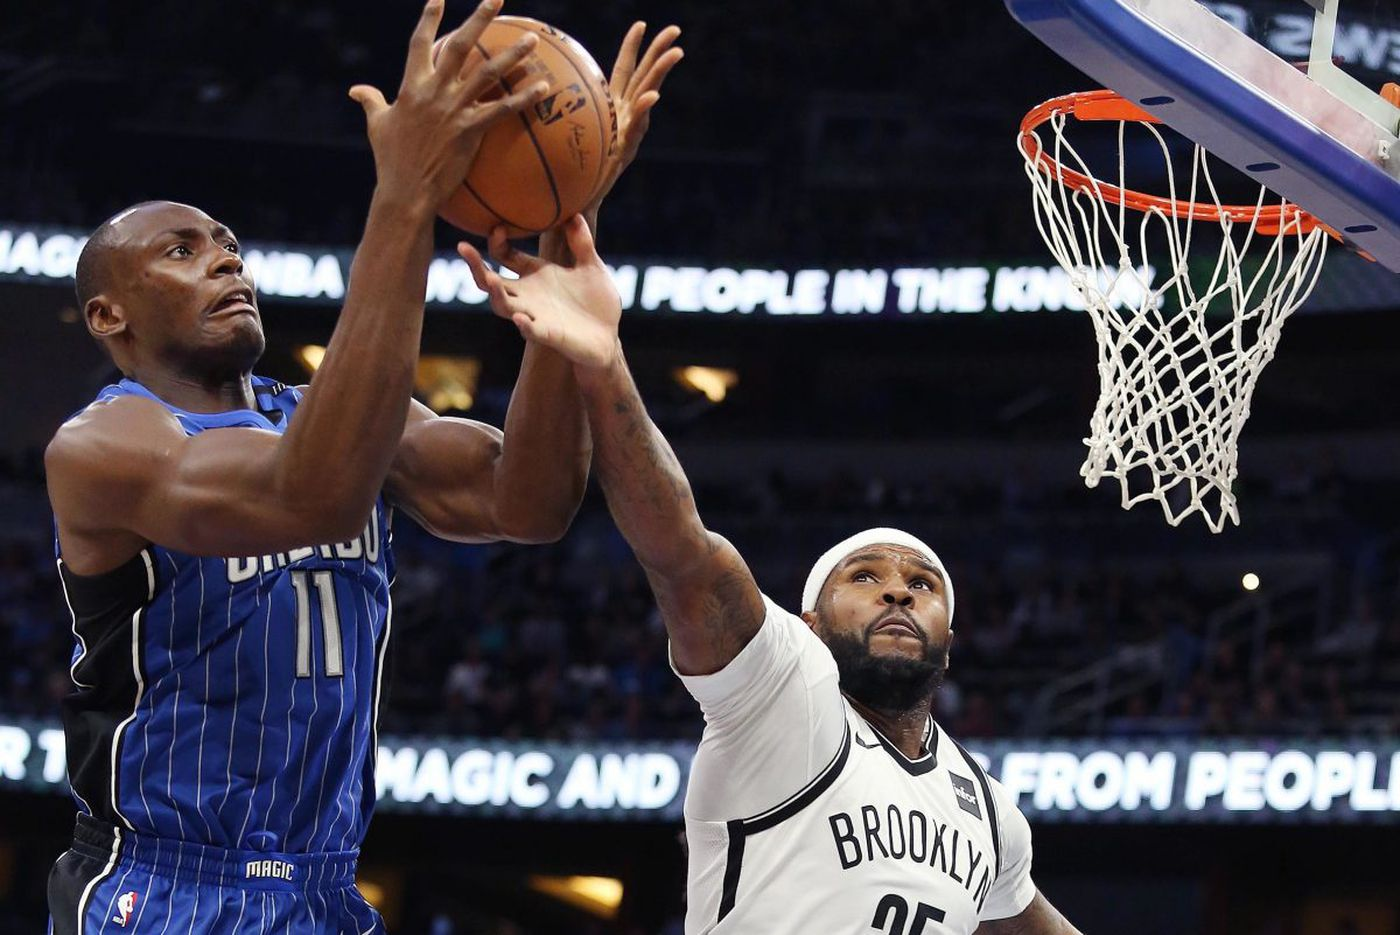 Trevor Booker: Who is the forward the 76ers got in a trade for Jahlil Okafor?